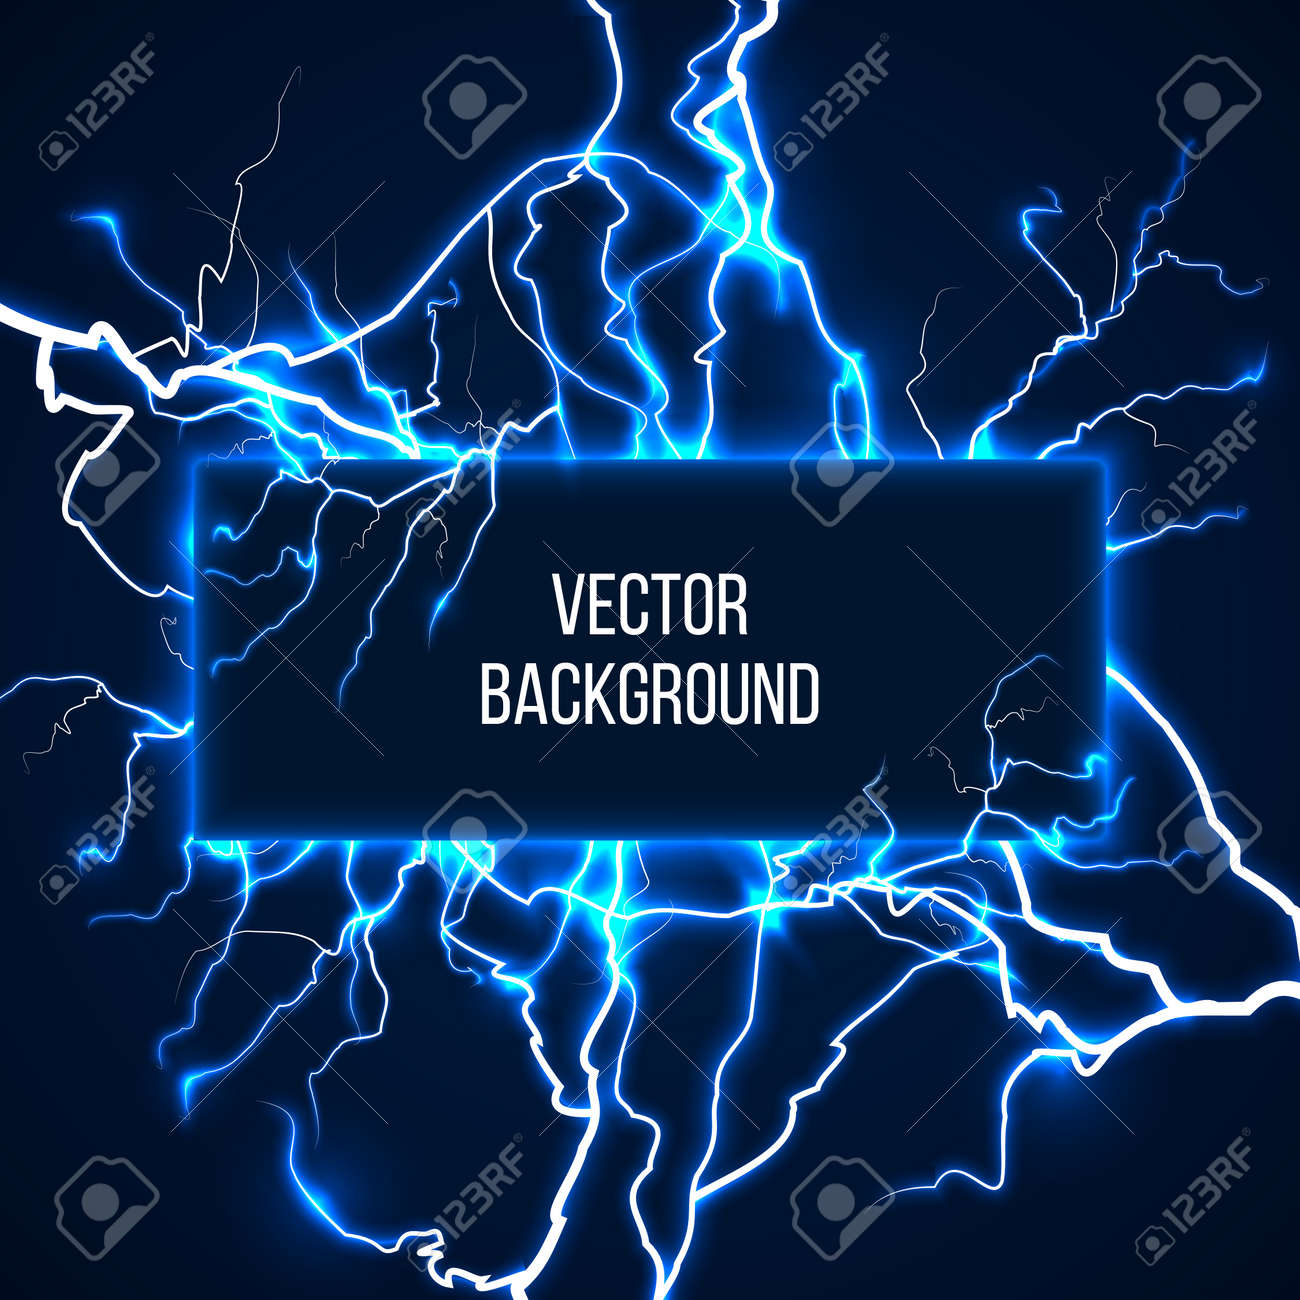 Vector banner with lightnings and discharge current. Electricit, voltage storm, weather nature illustration - 166762838